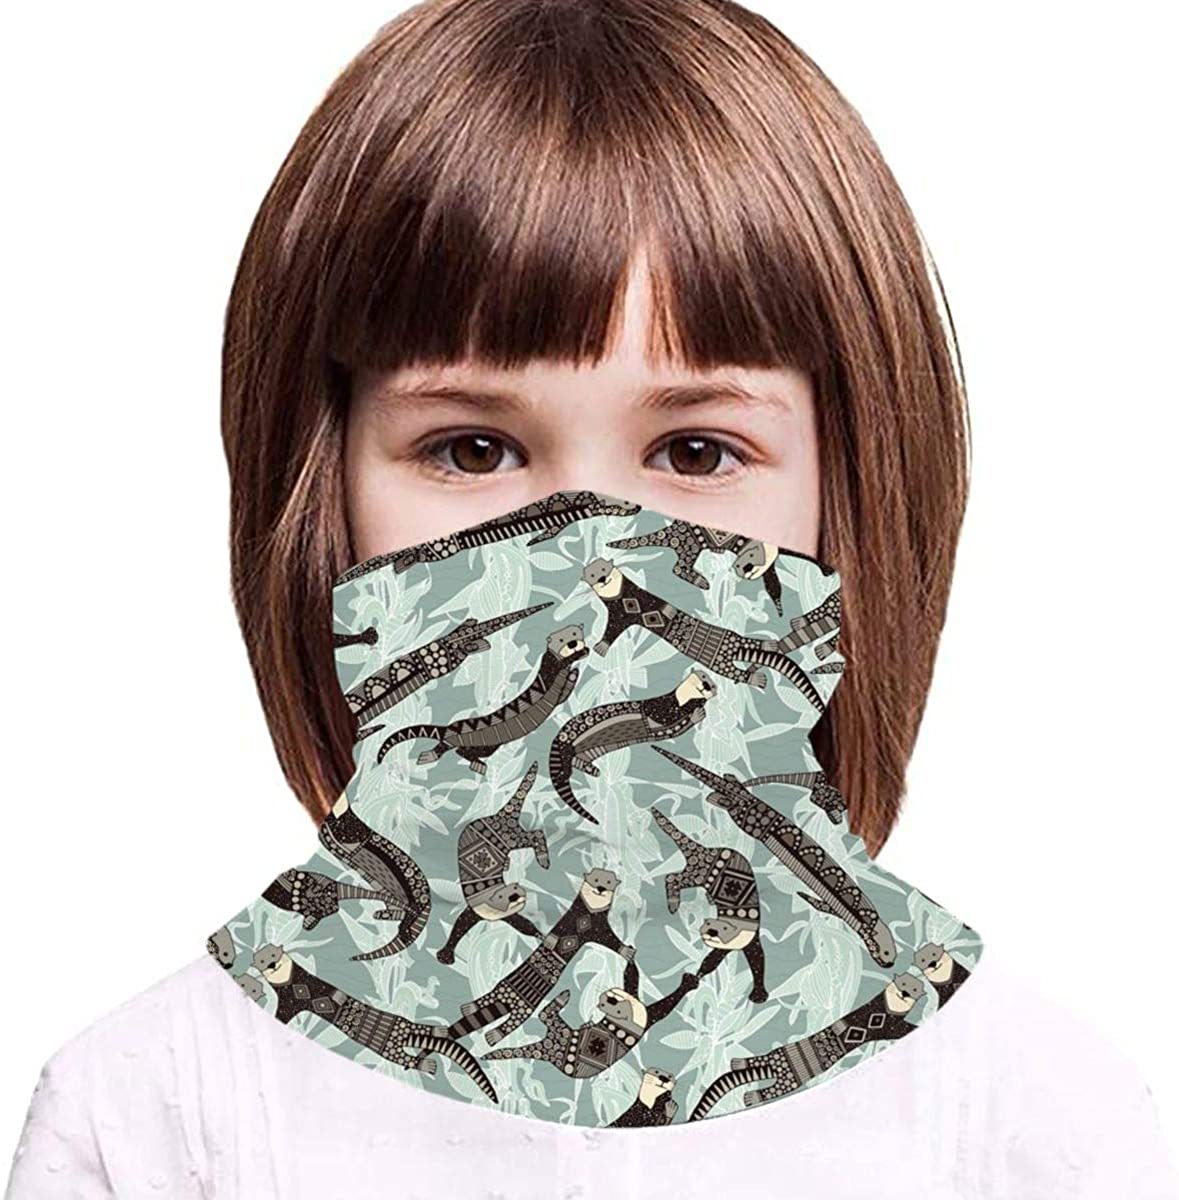 Sea Otters Kids Face Mask Dust Sun UV Protection Neck Gaiter Balaclava Face Cover Scarf Summer Breathable for Cycling Fishing Outdoors